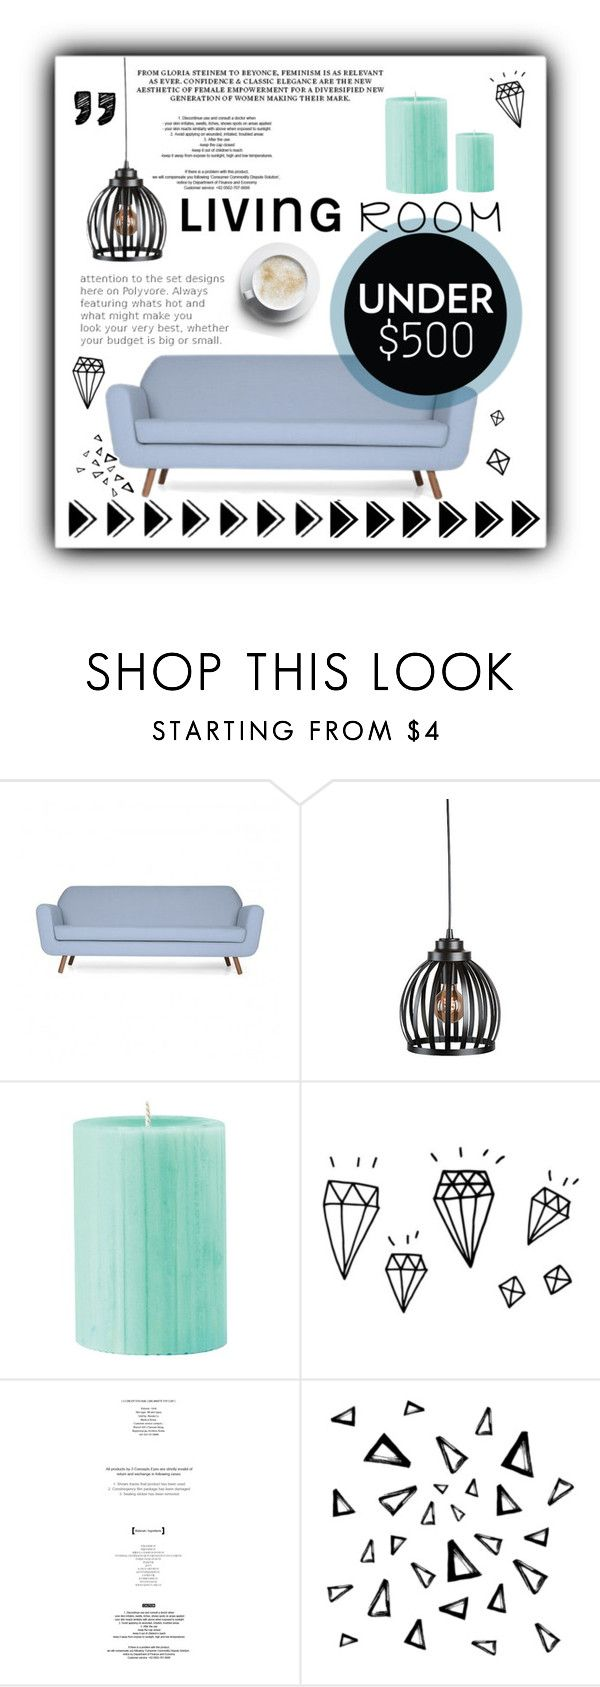 """""""It's under 500$!"""" by smaragda16 ❤ liked on Polyvore featuring interior, interiors, interior design, home, home decor, interior decorating, Improvements, StyleNanda, Nika and livingroom"""